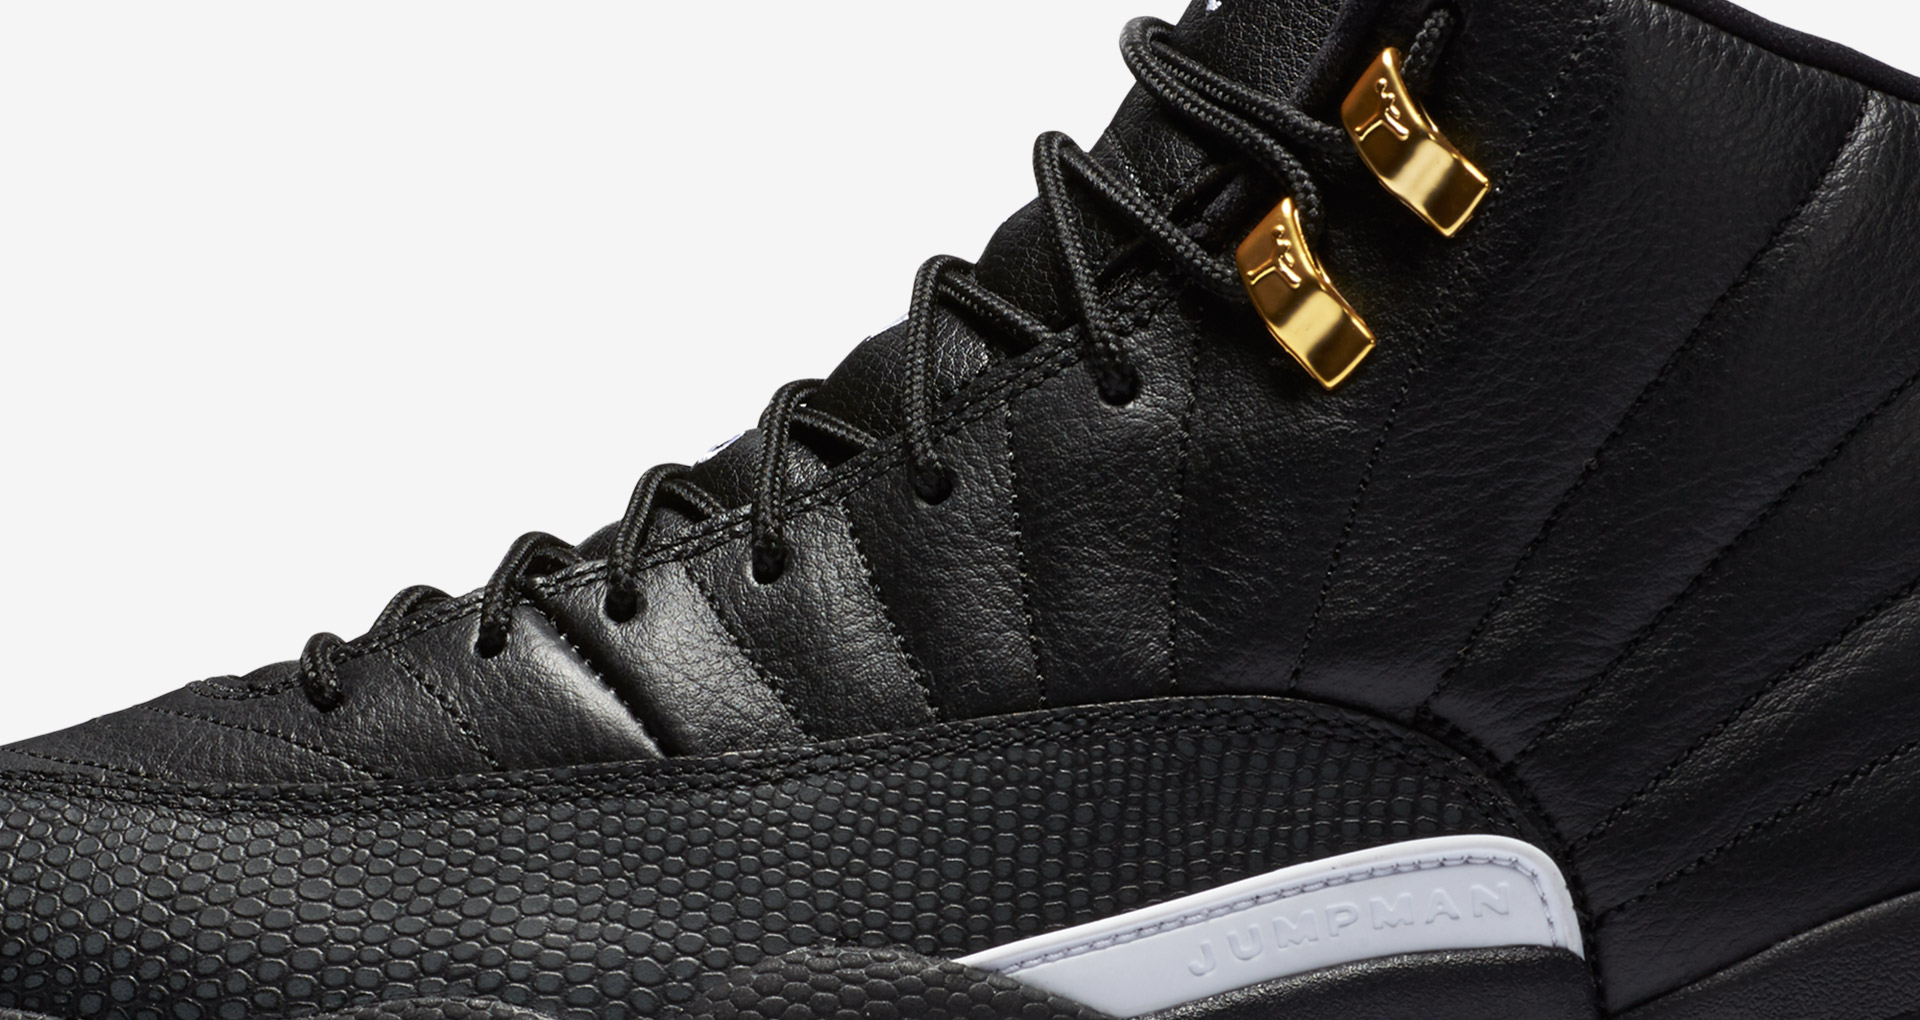 Air Jordan 12 Retro %22The Master%22 Featured Image